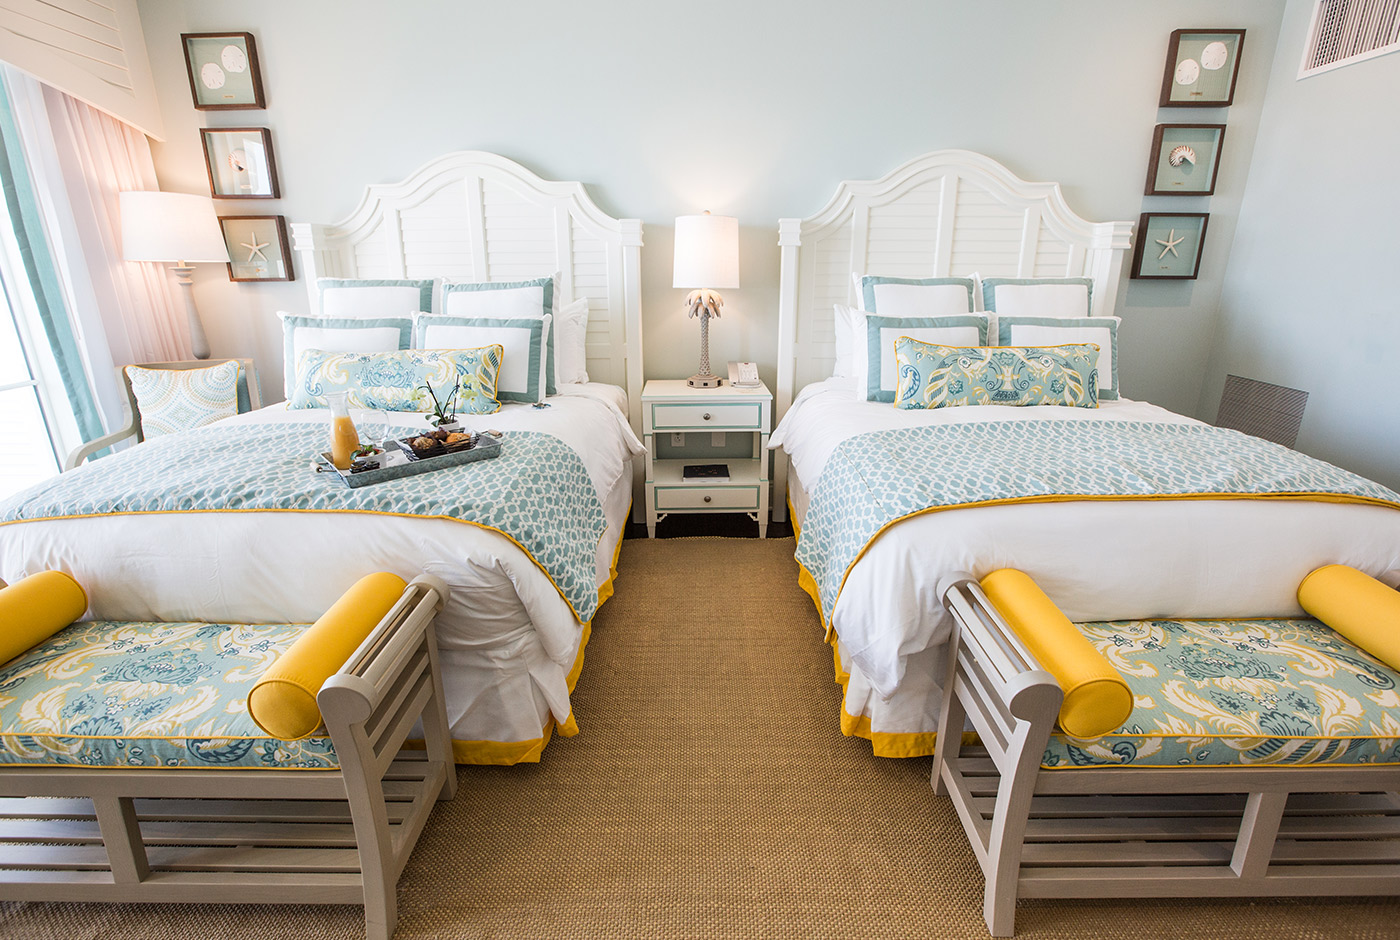 Hotel Room with Two Queen-Size Beds at The Beach Club in Charleston